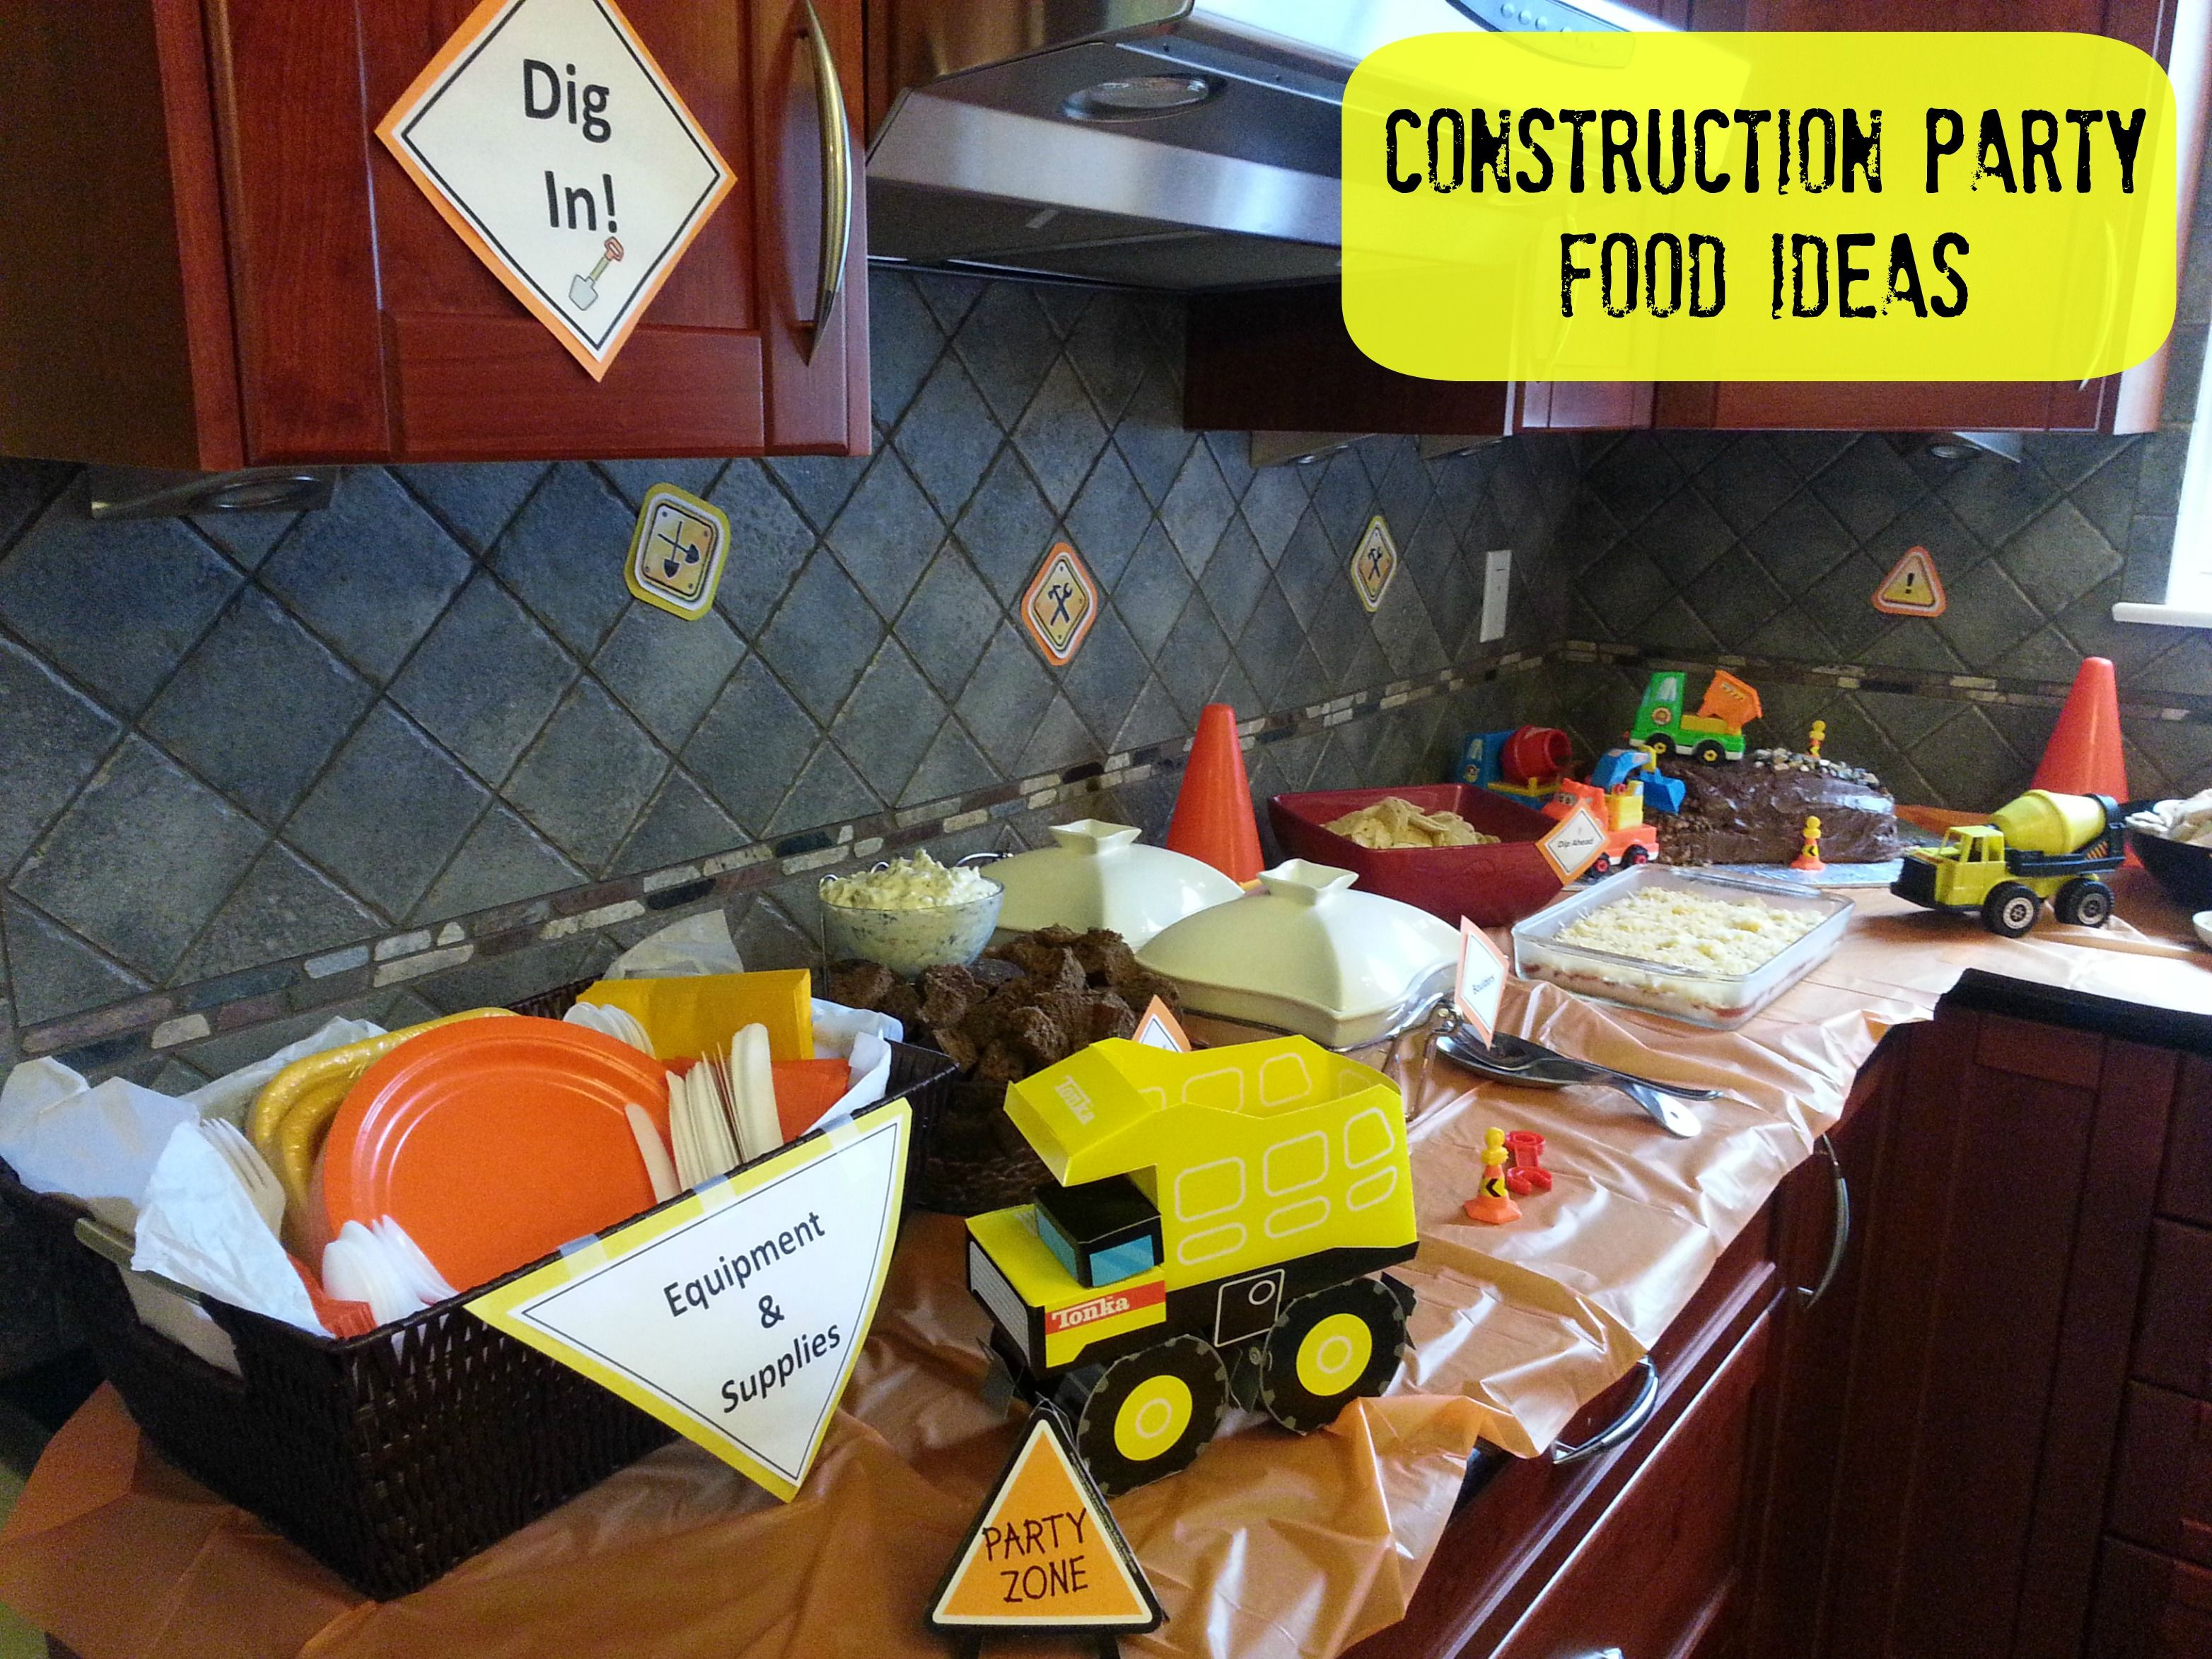 Themed Dinner Party Ideas For Adults Part - 19: Kids Birthday Party Ideas: Food For A Construction Birthday Party